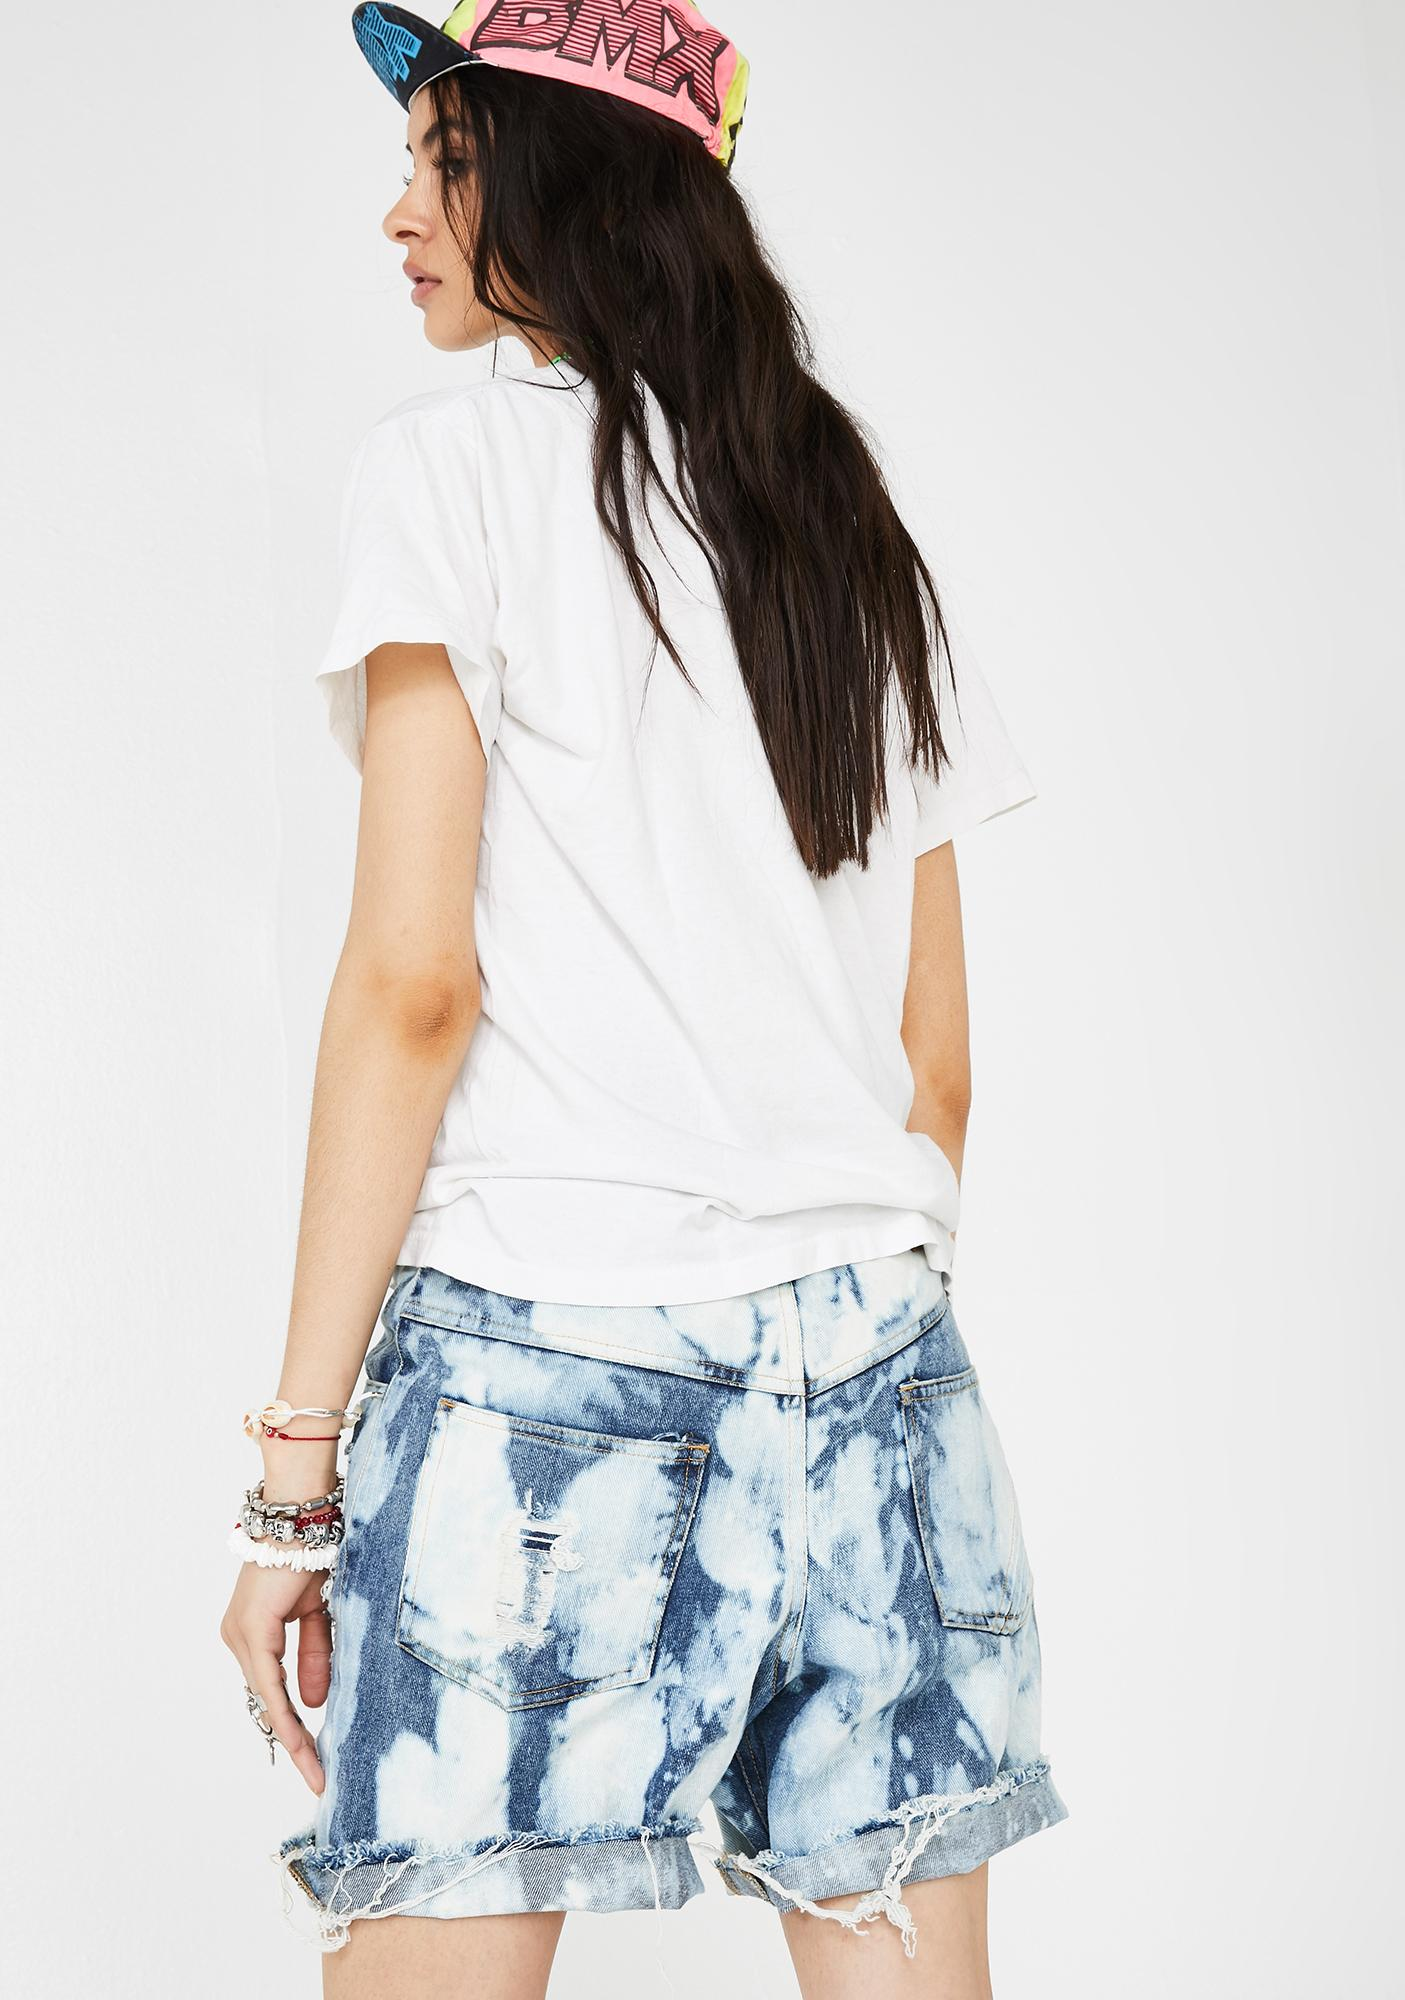 The People VS Sky Bleach Gusset Denim Shorts